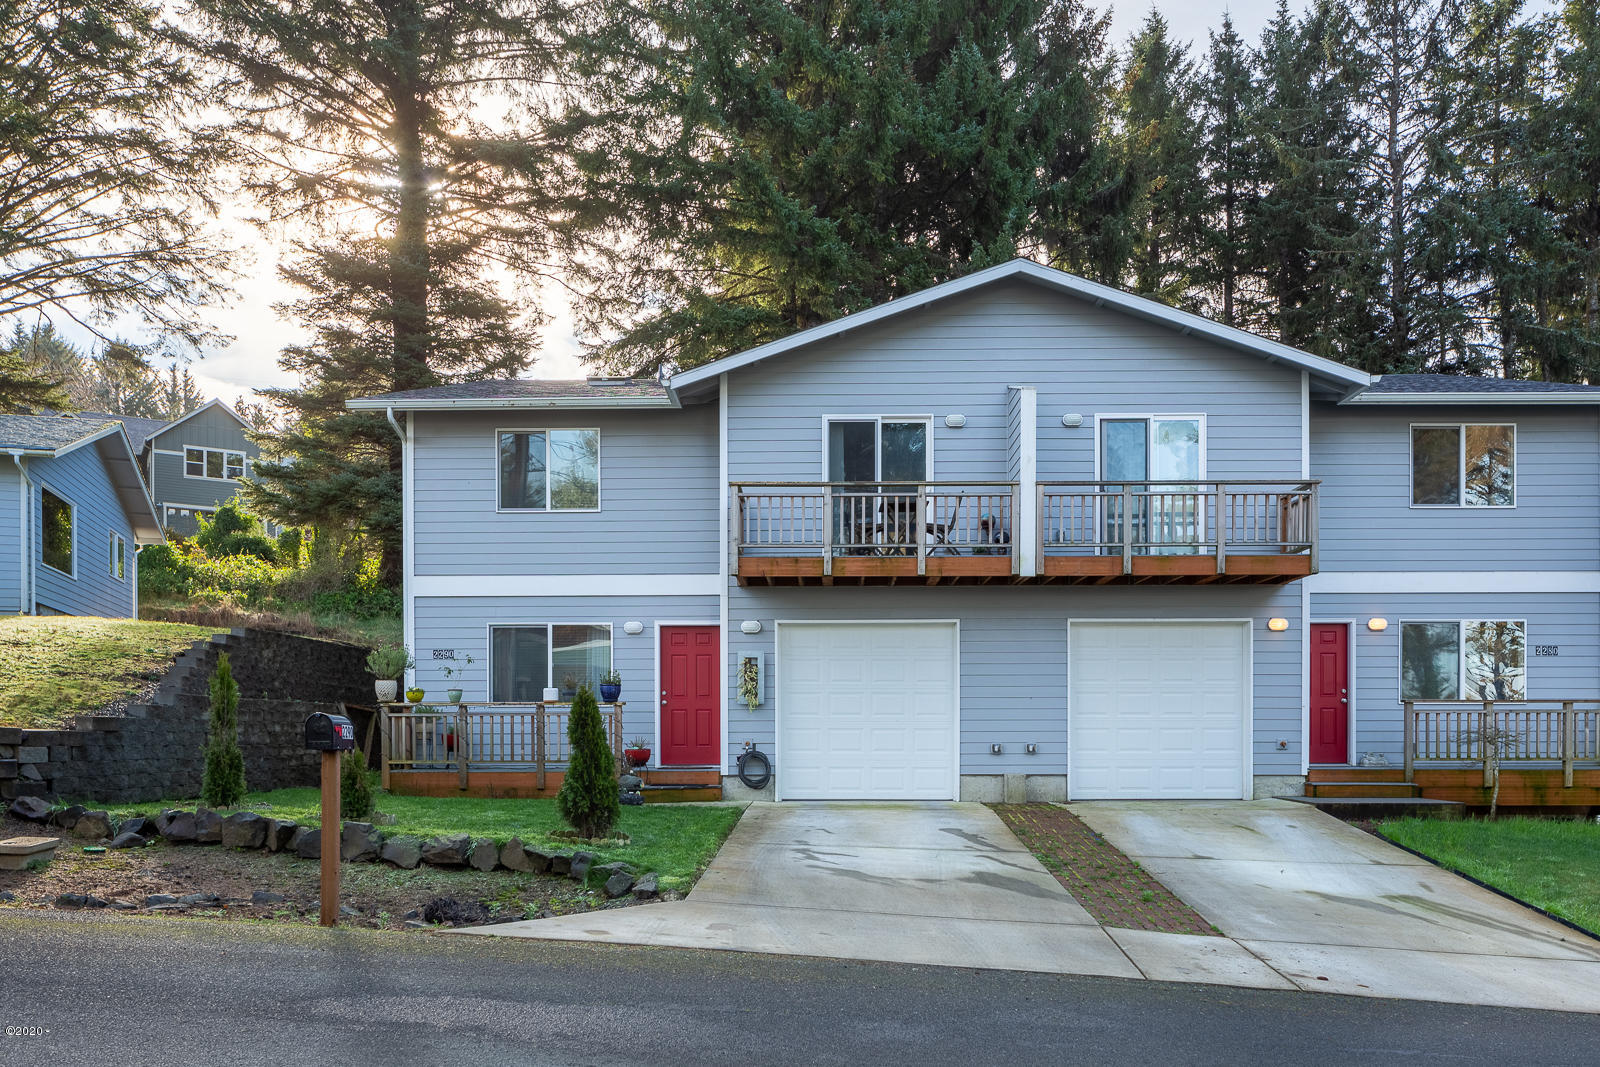 2280/2290 NE 36th Dr, Lincoln City, OR 97367 - 2290NE36th-01